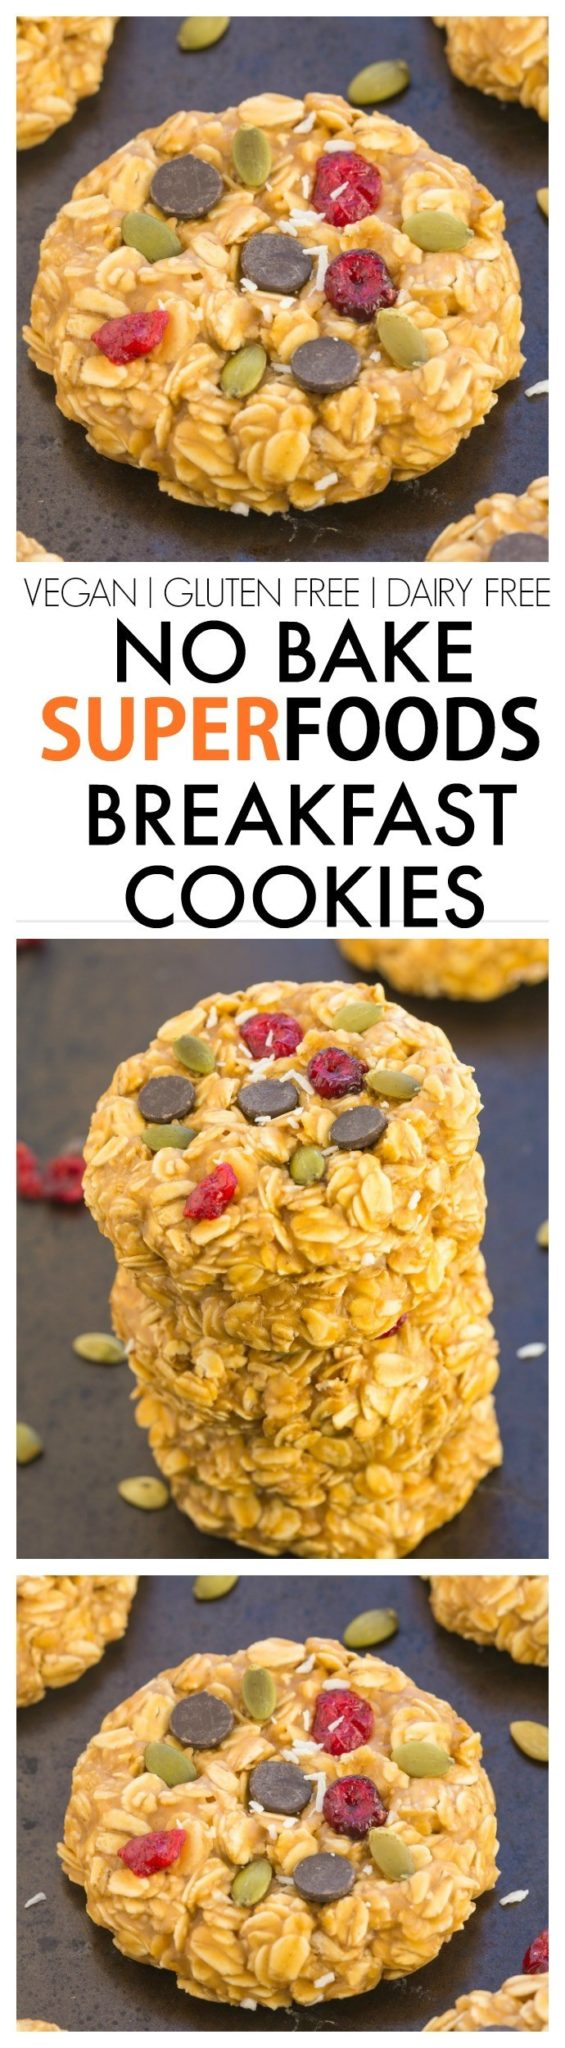 Healthy Snacks - No Bake SUPERFOODS Breakfast Cookies Recipe - Vegan - Gluten-Free - Dairy-Free Treats via The Big Mans World